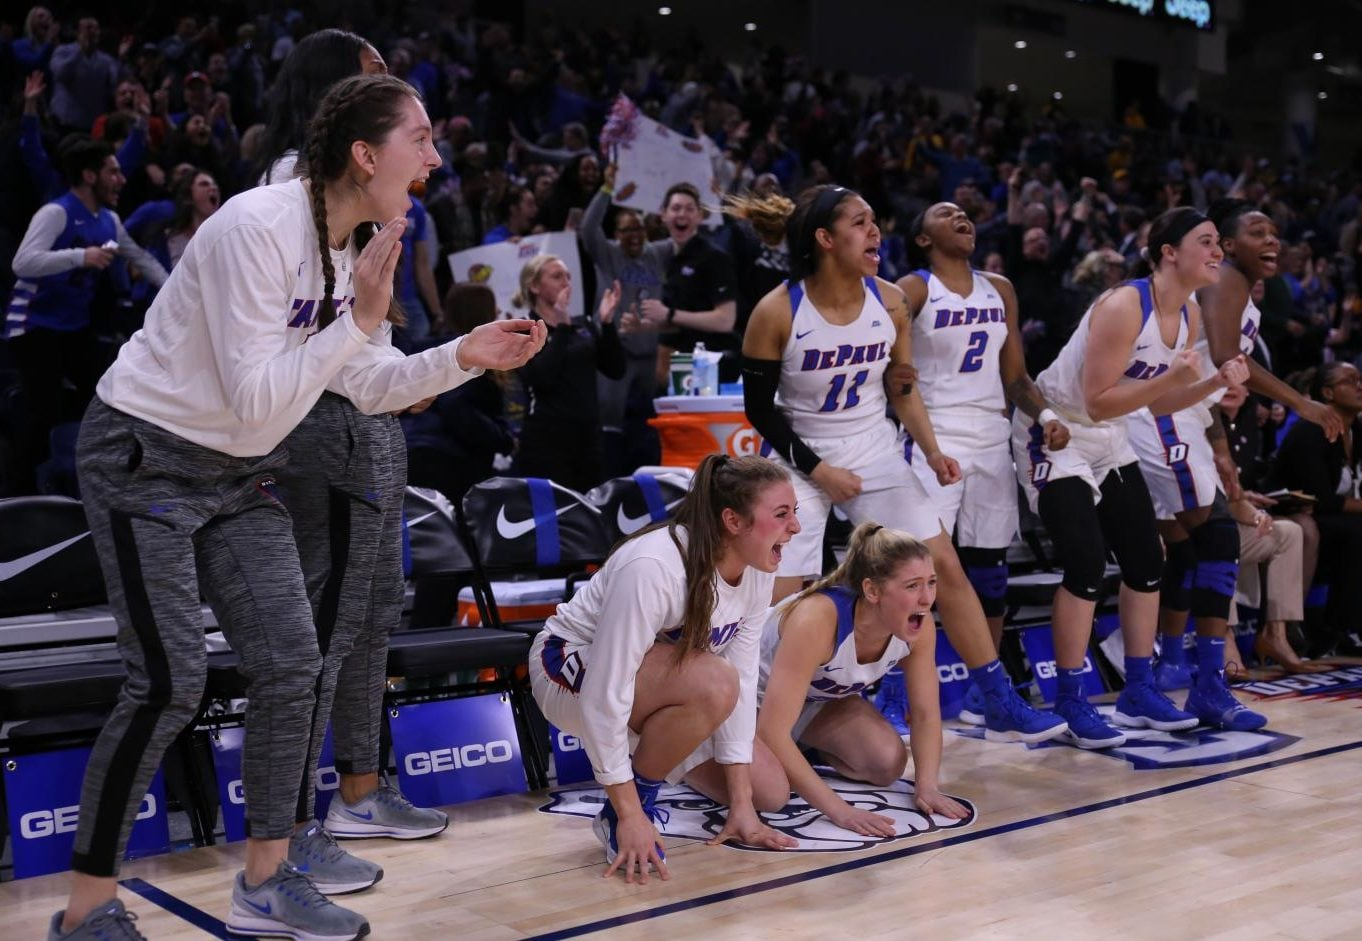 The+DePaul+bench+reacts+to+the+late-game+drama+that+ended+with+the+Blue+Demons+topping+the+Golden+Eagles+in+the+Big+East+Championship+game+Tuesday+night+at+Wintrust+Arena.+Alexa+Sandler+%7C+The+DePaulia